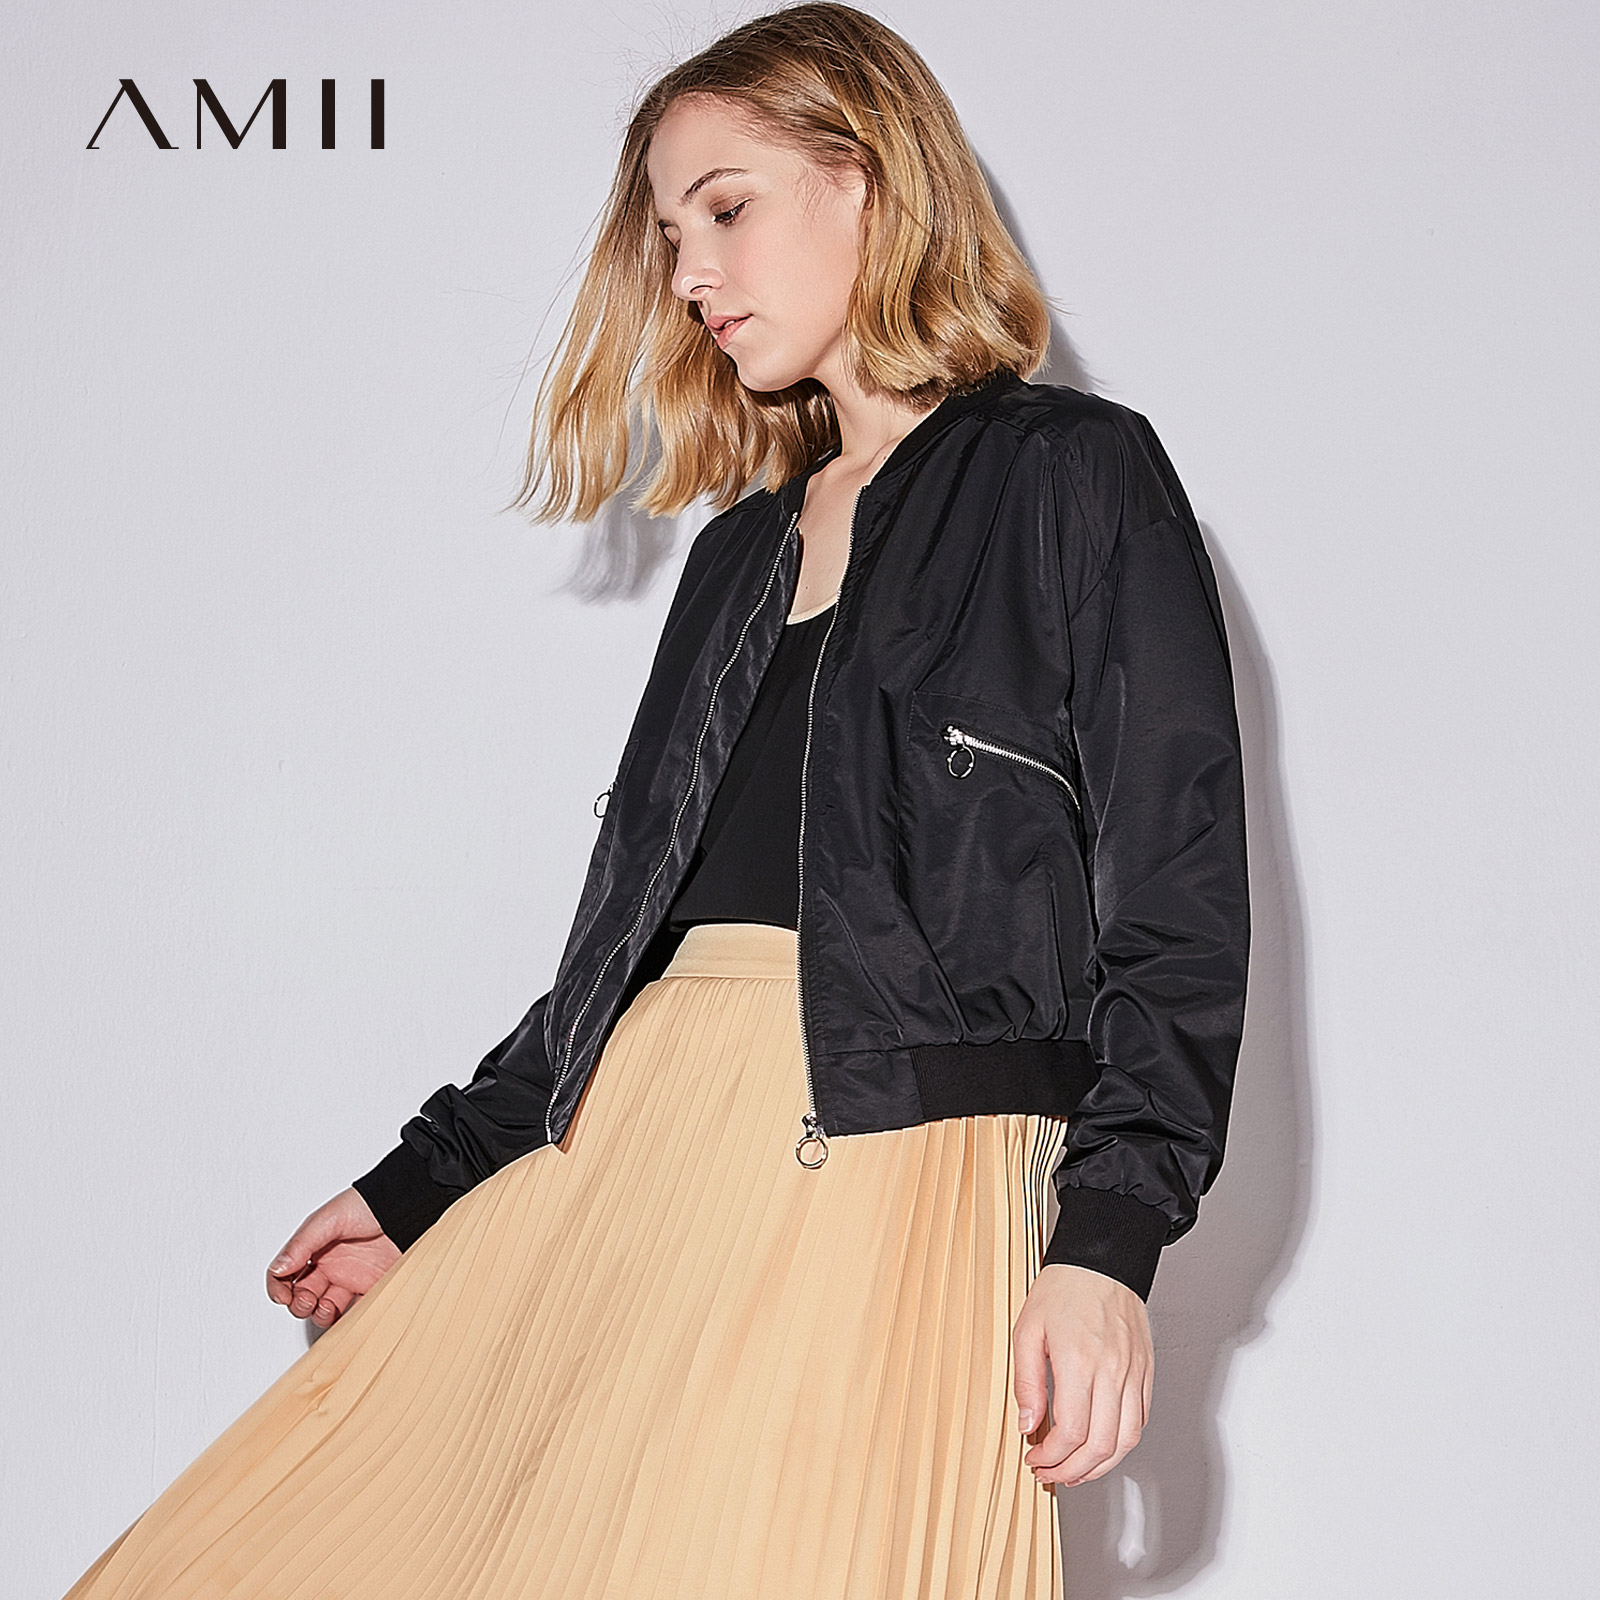 Amii Casual Women Jacket 2018 Solid Stand Collar Zipper Female Jackets